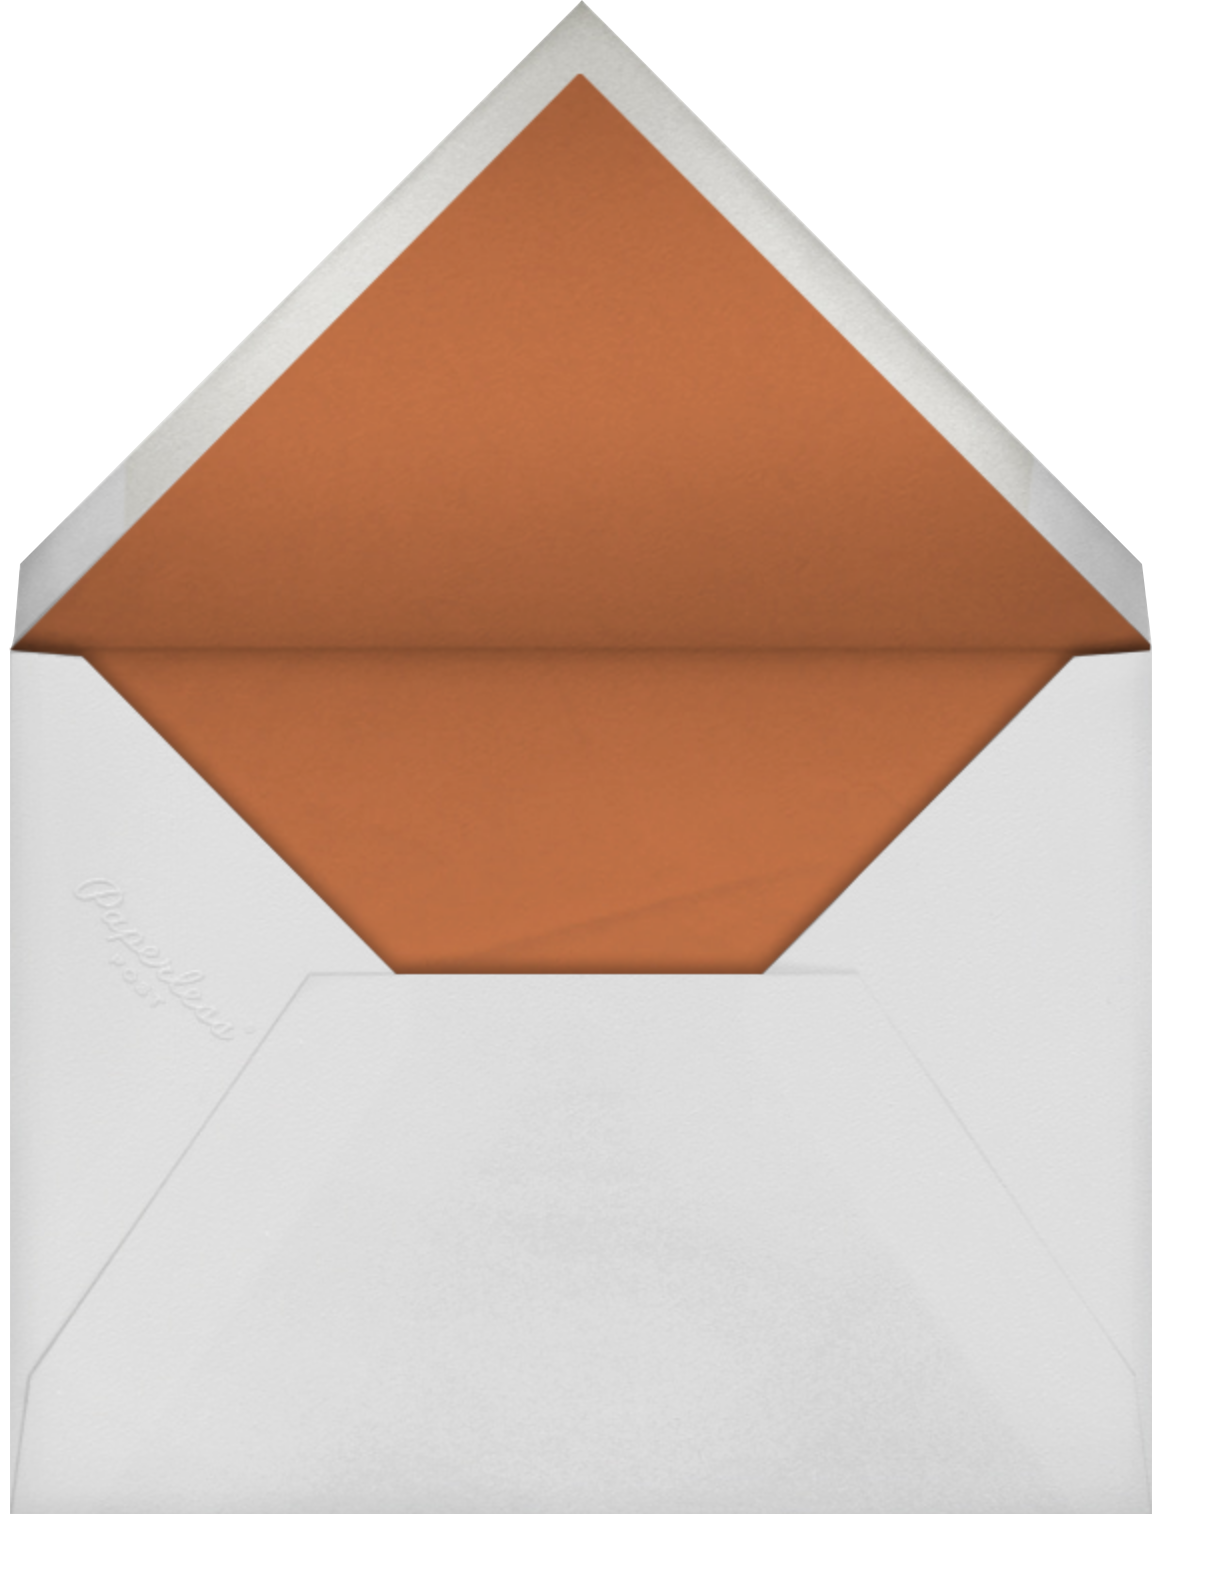 Alba (Save the Date) - Venamour - Save the date - envelope back